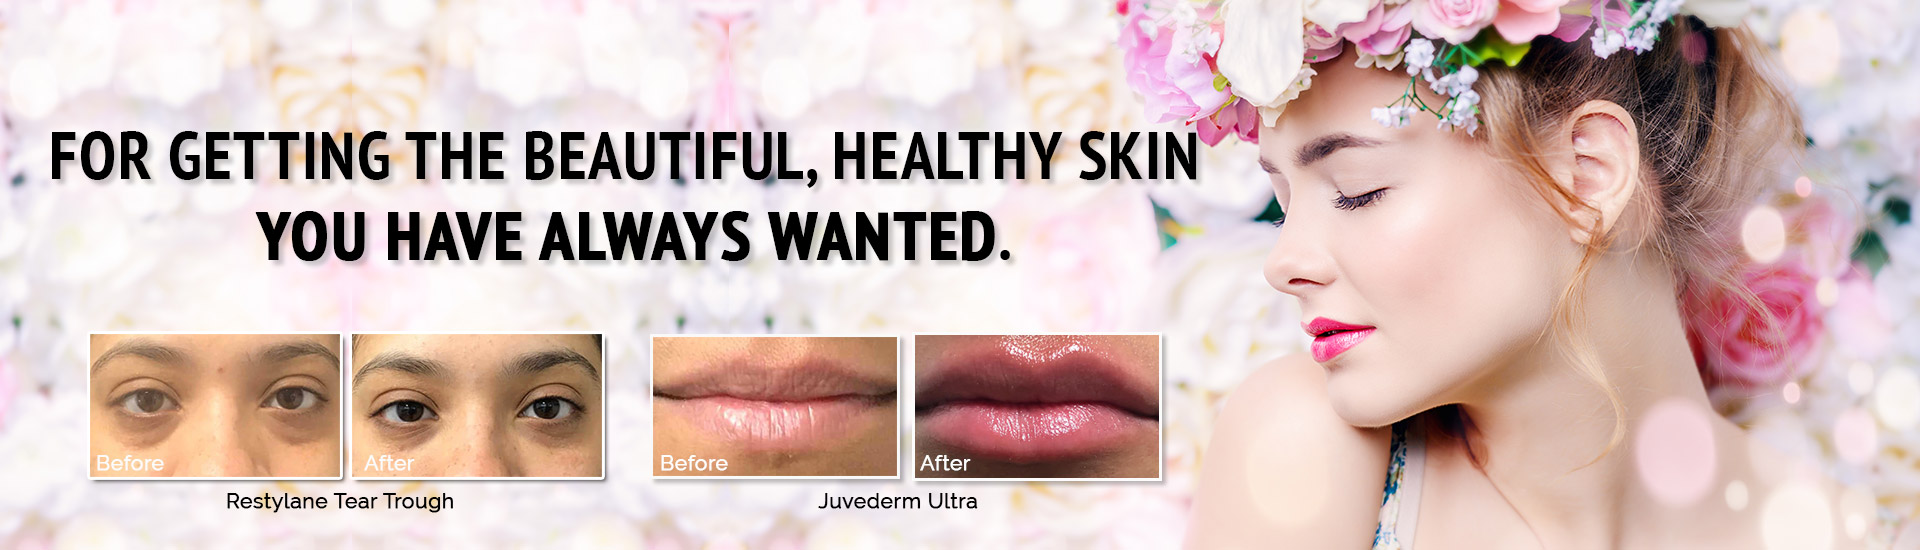 For Getting beautiful, healthy skin  You have always wanted.